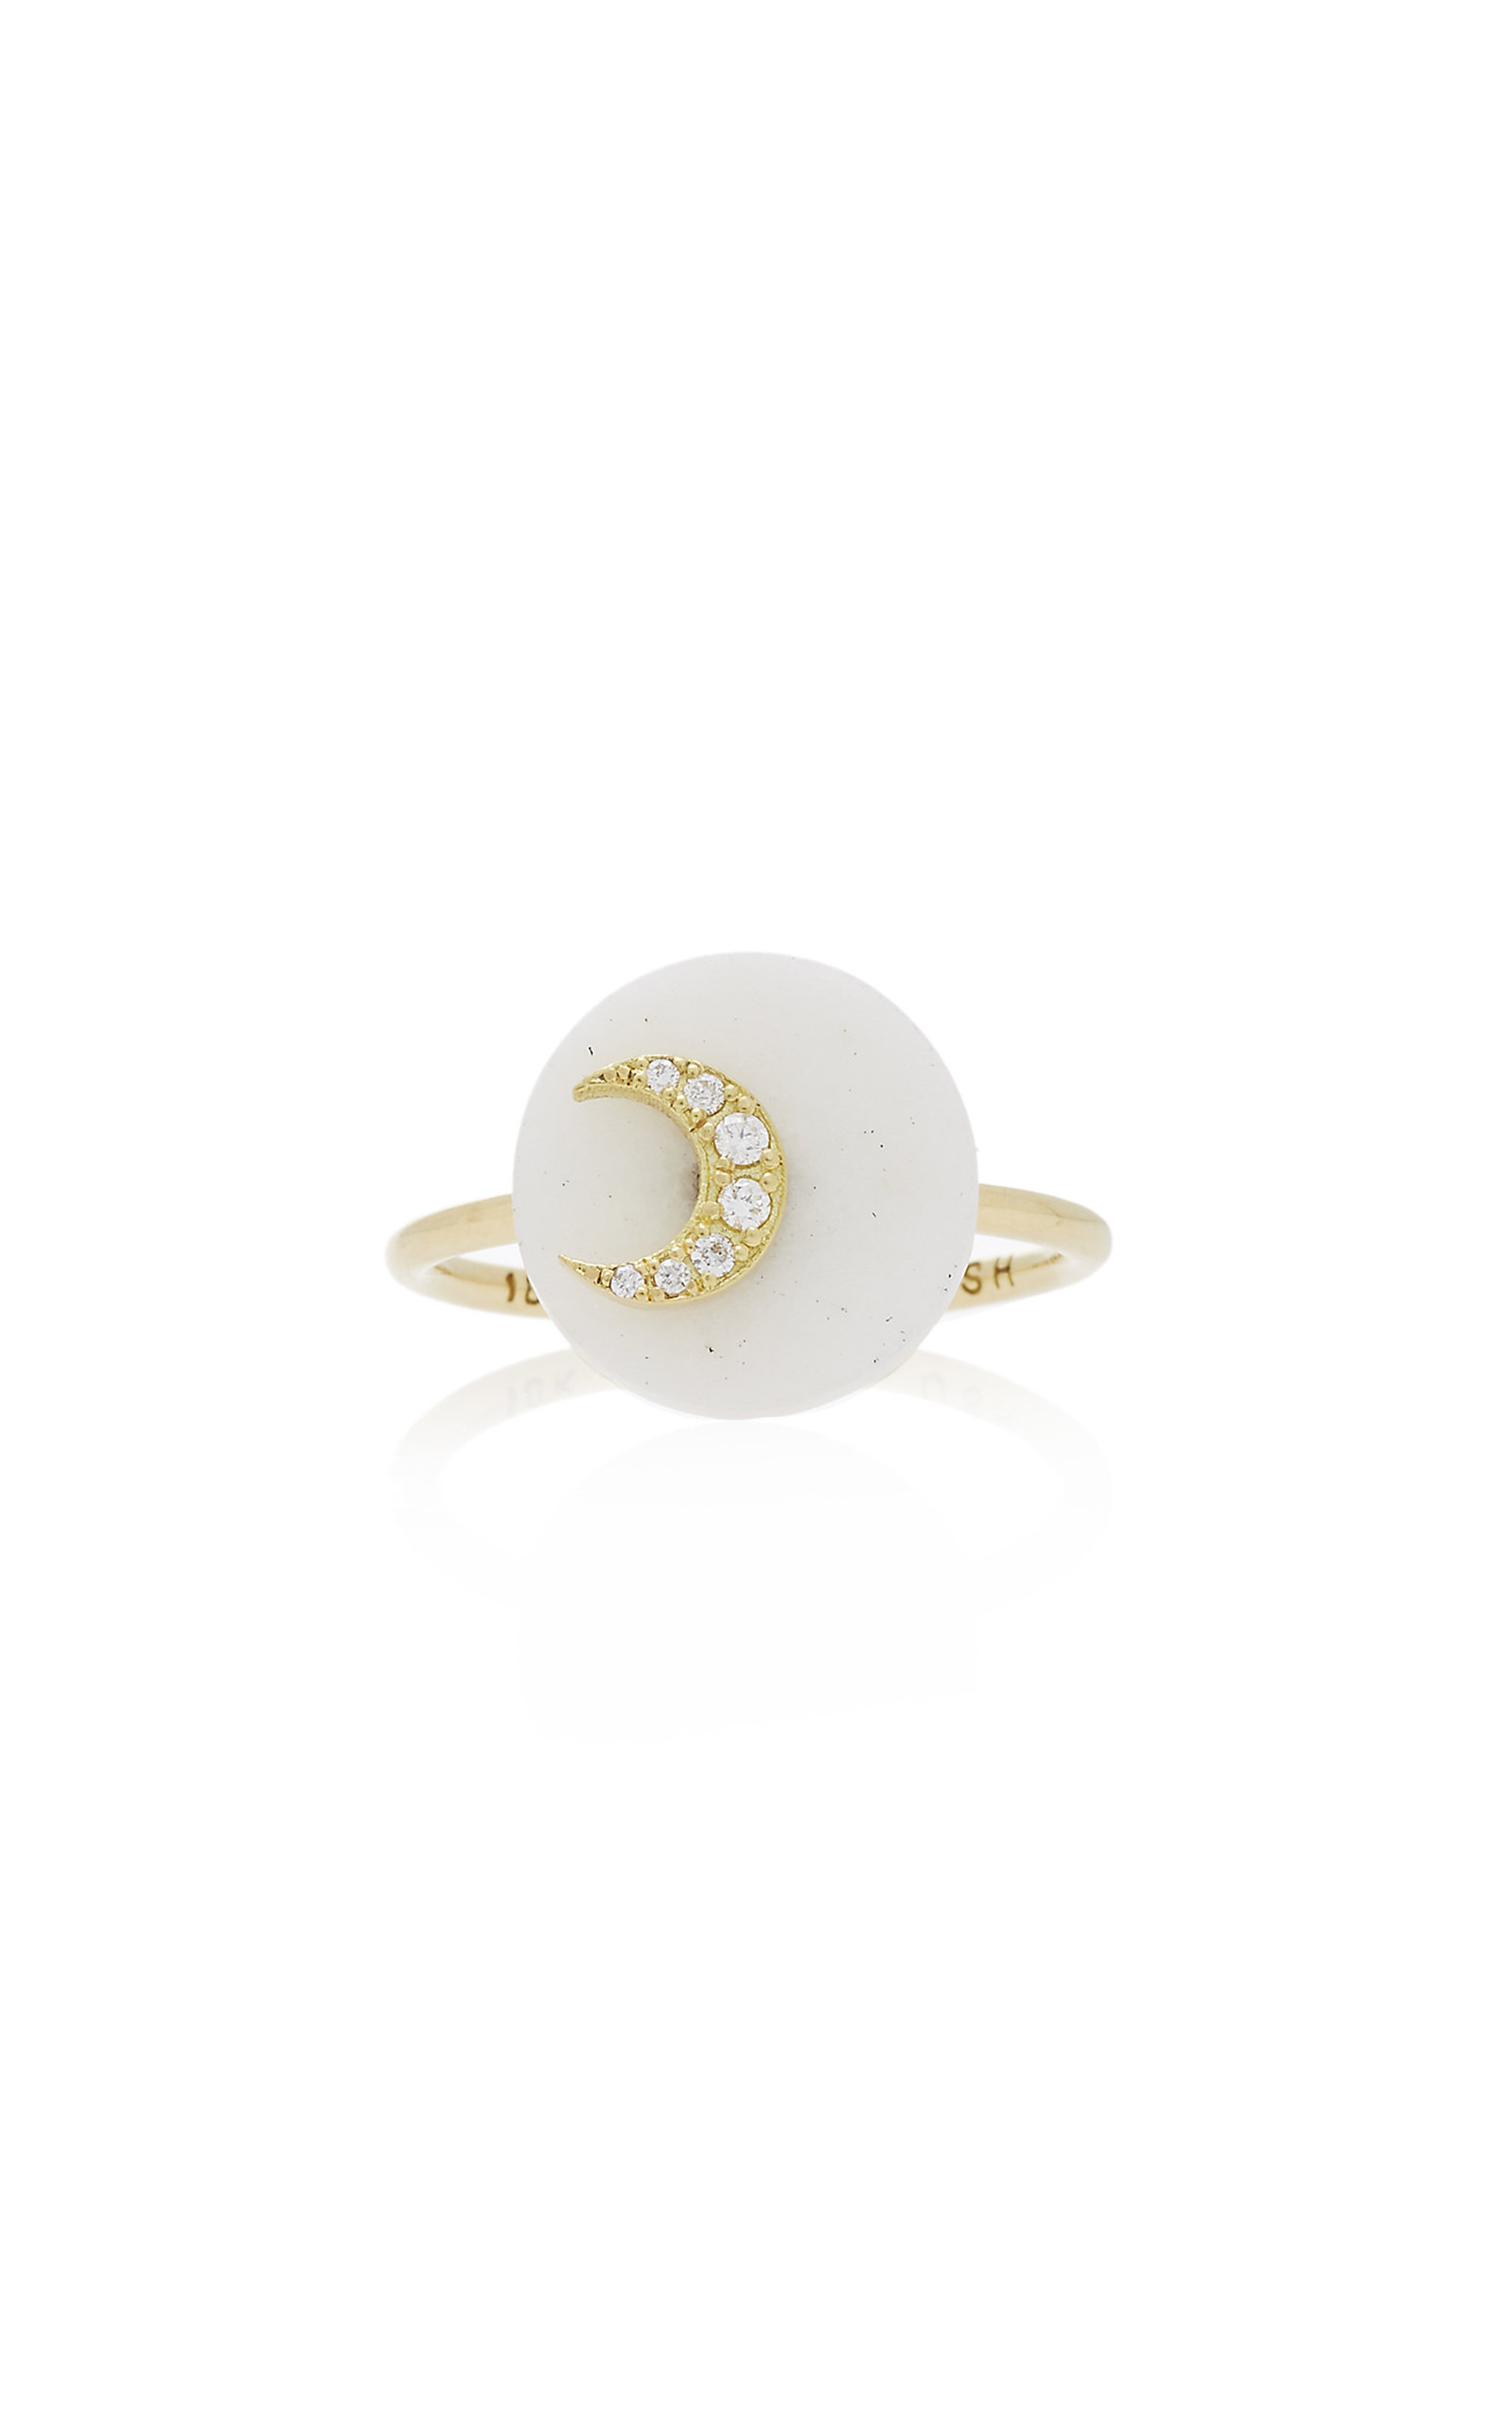 NOUSH JEWELRY COEXIST MOON ON AGATE RING